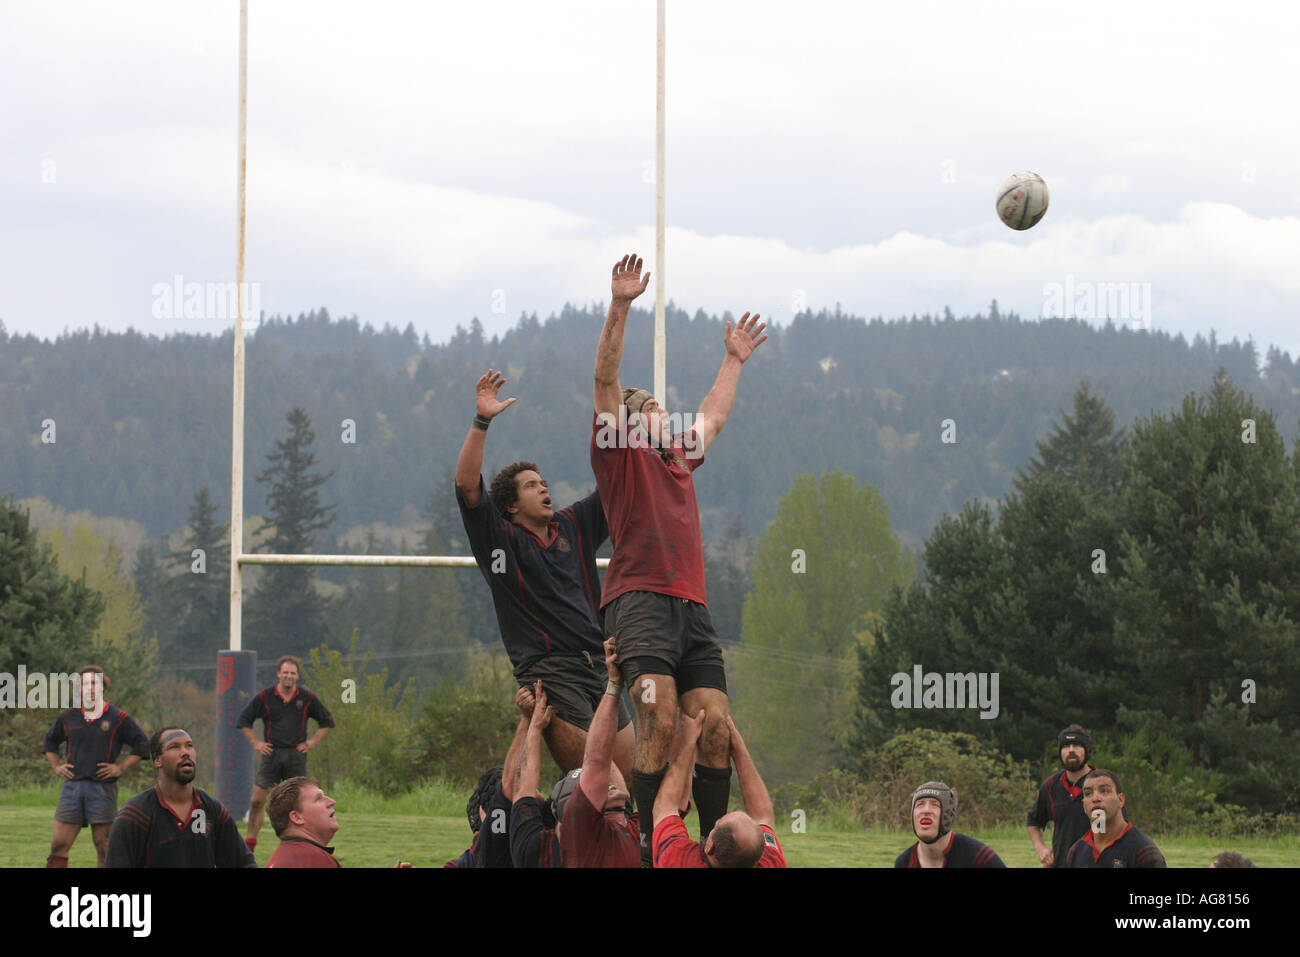 A men s rugby game in action during the scrum as players fight for the ball at a game in Oregon - Stock Image